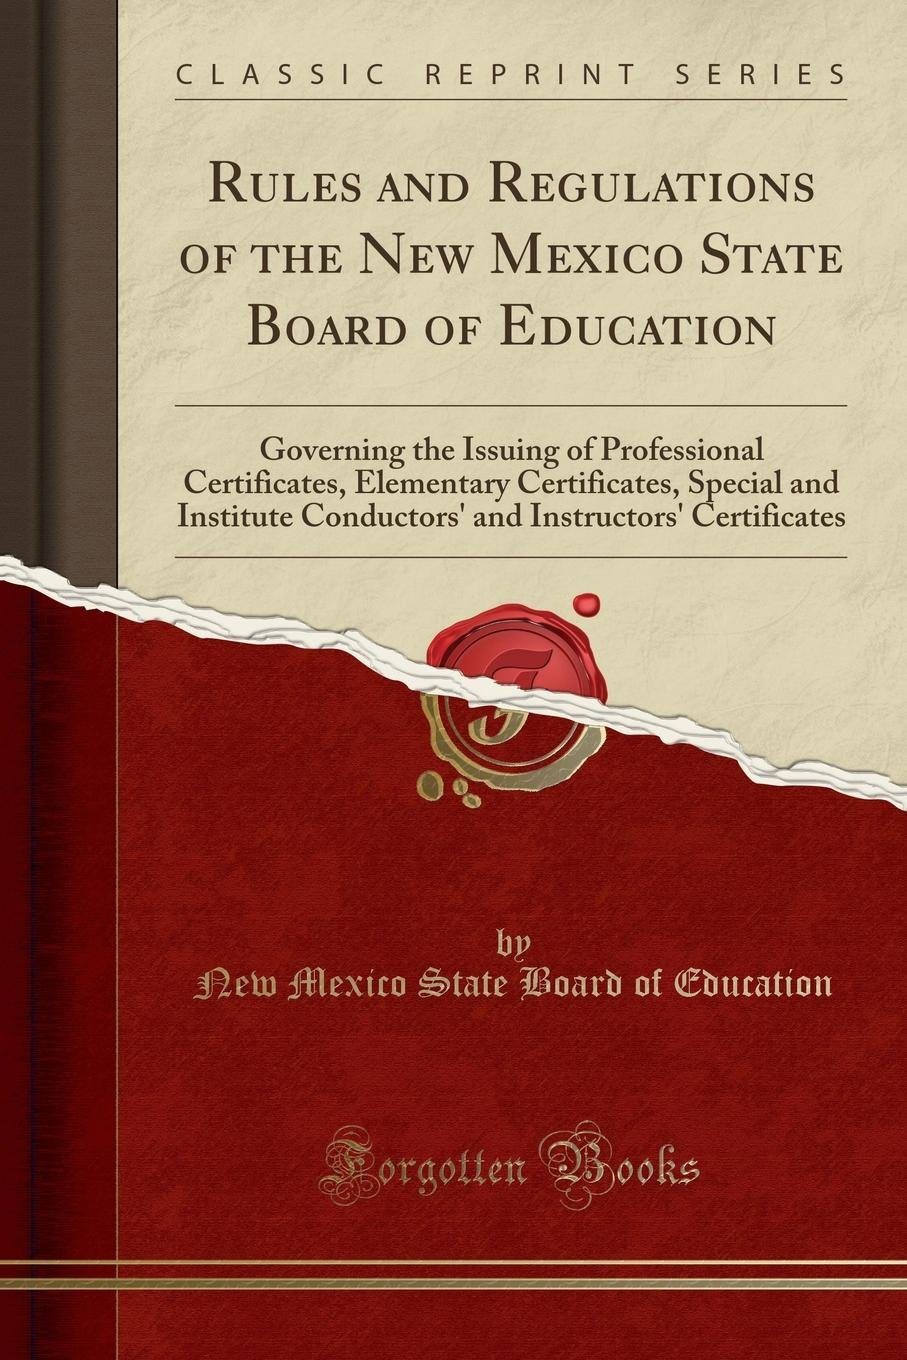 Download Rules and Regulations of the New Mexico State Board of Education: Governing the Issuing of Professional Certificates, Elementary Certificates, Special ... Instructors' Certificates (Classic Reprint) ebook